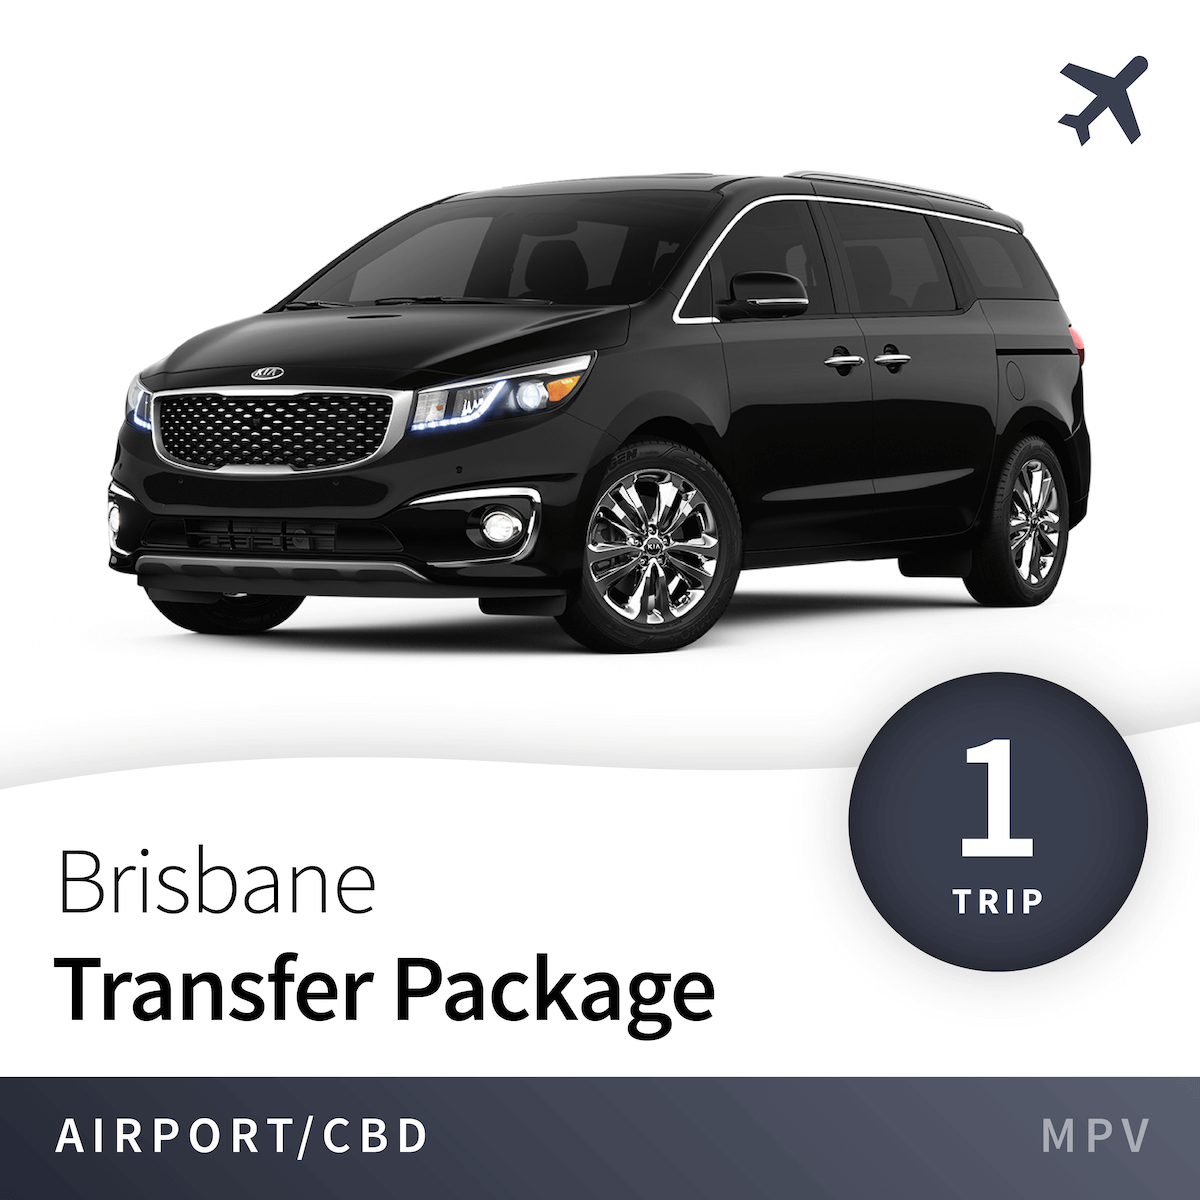 Brisbane Airport Transfer Package - MPV (1 Trip) 16